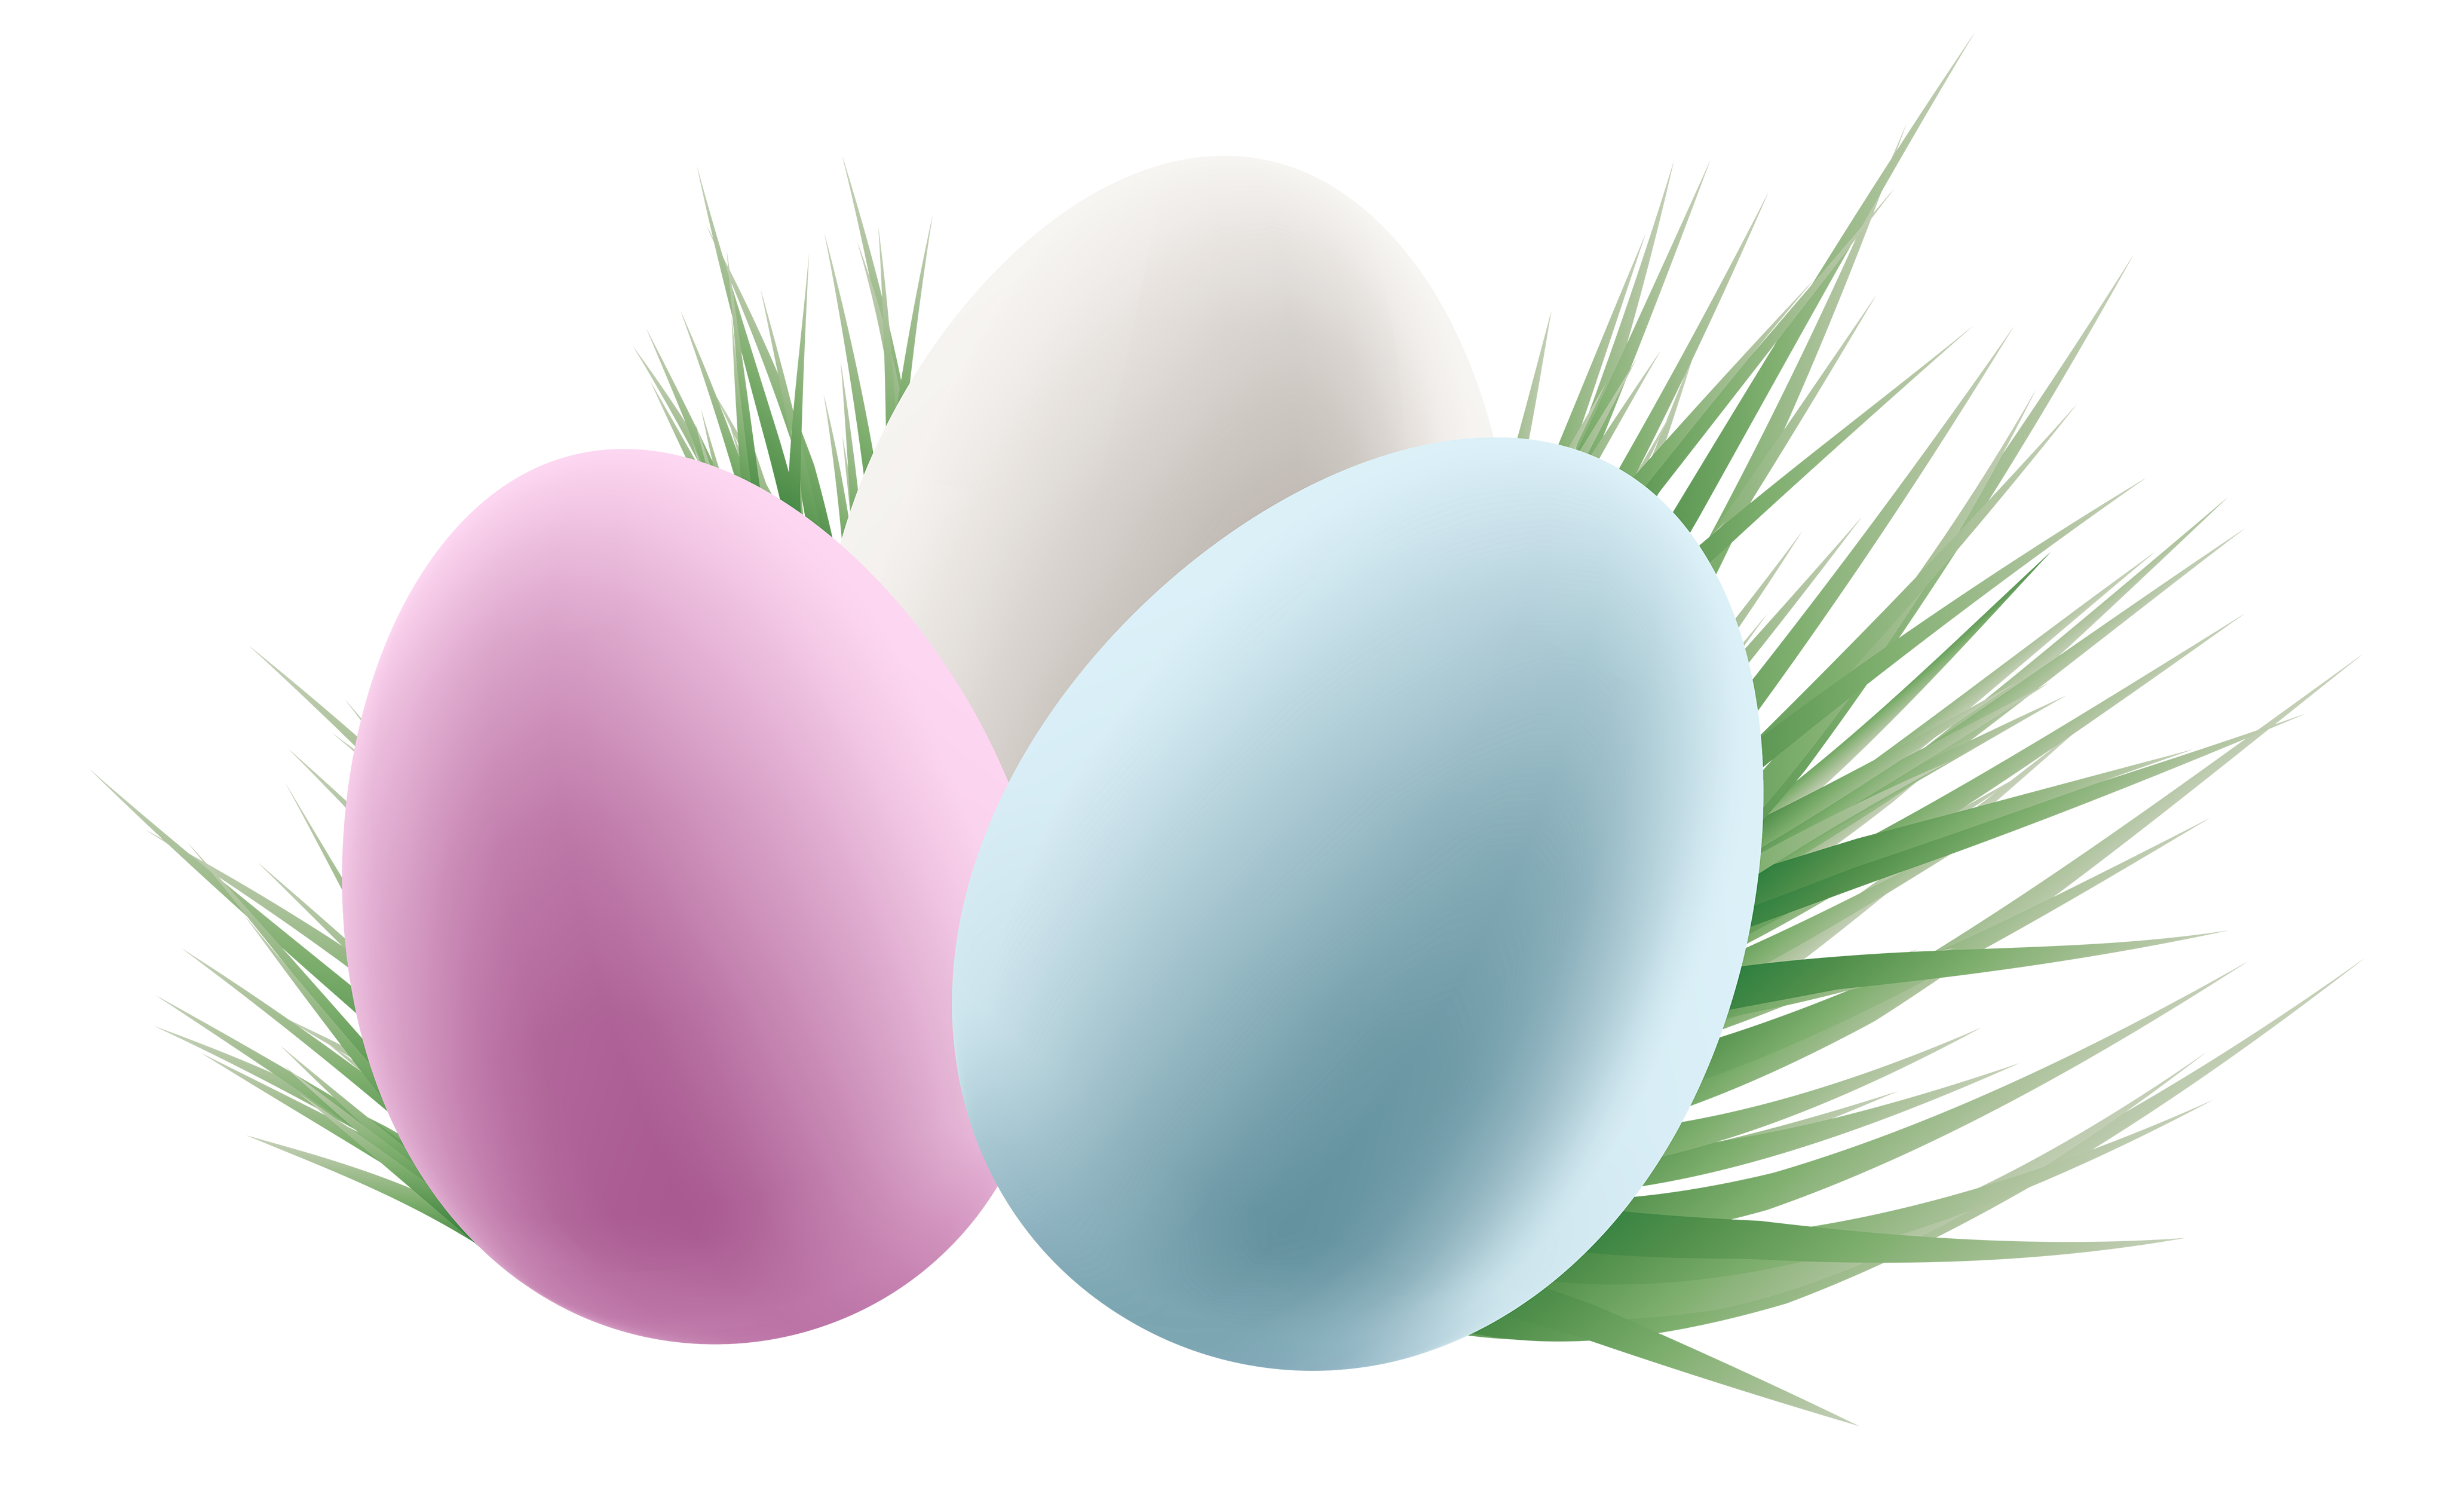 Easter grass png. Transparent eggs and clipart